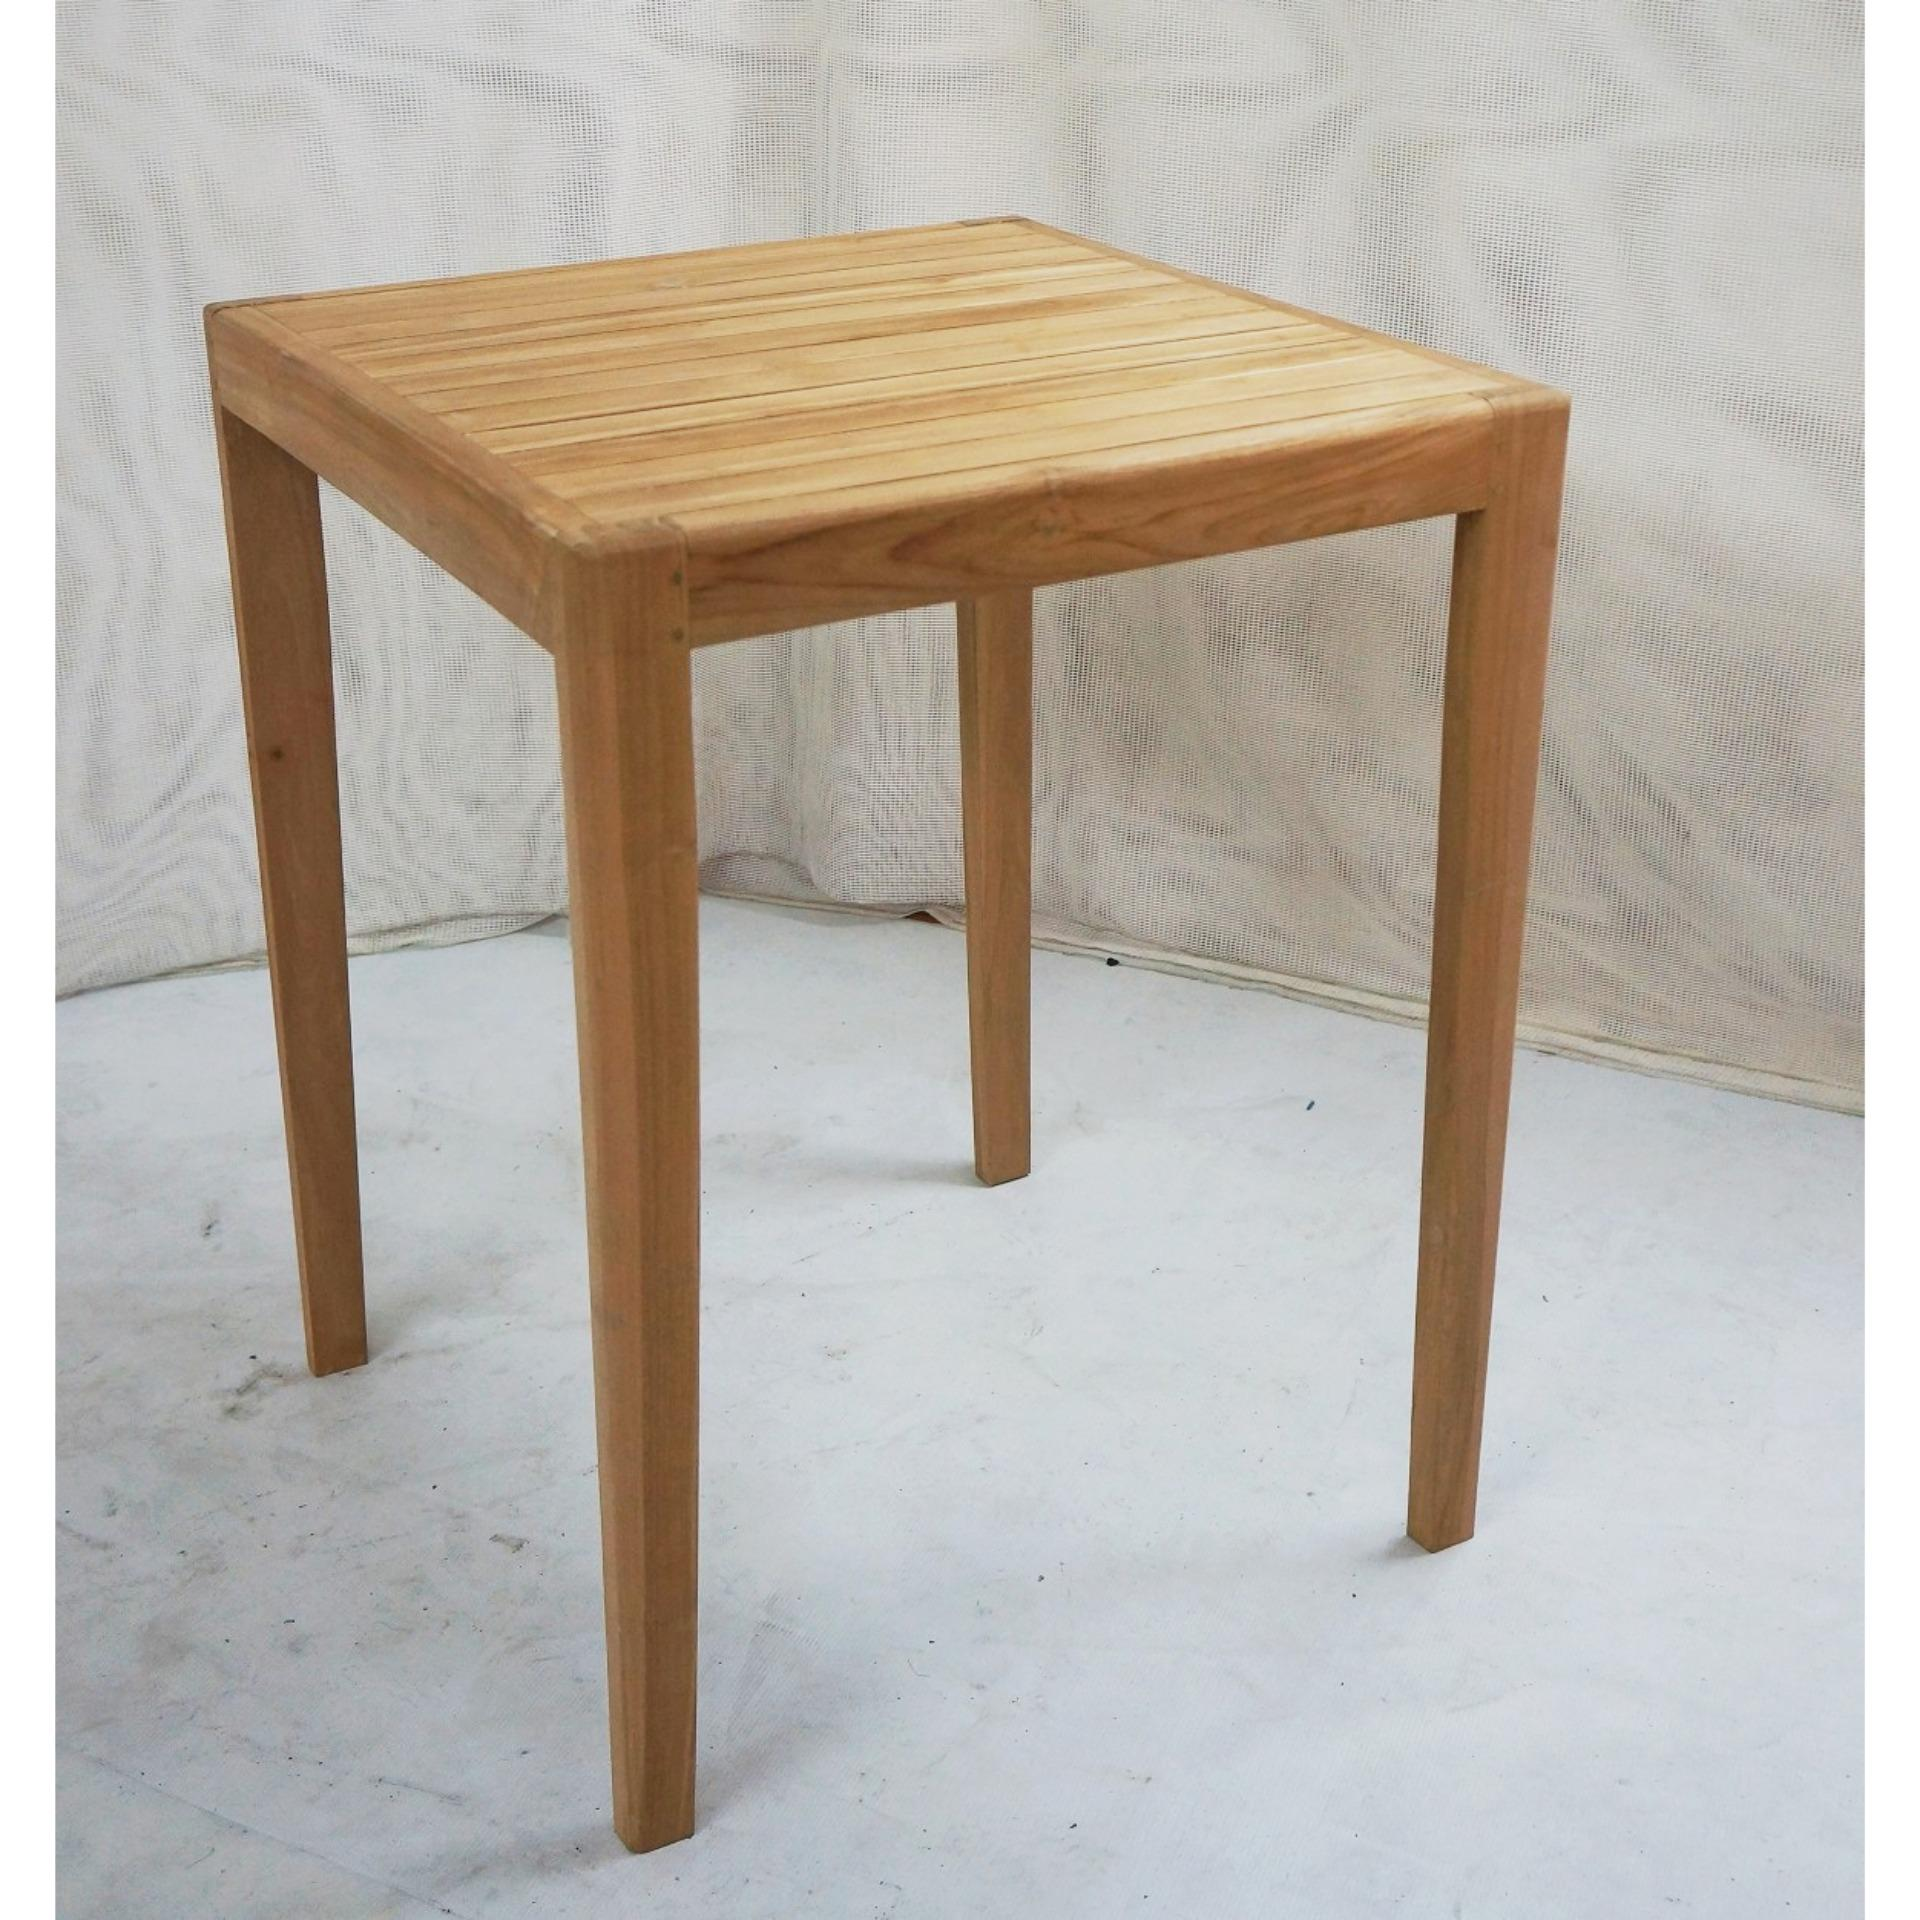 ... Linden Teak Handcrafted Solid Teak Wood Bench Dining Table 60x60cm  Furniture (Eco WoodSeries) ...